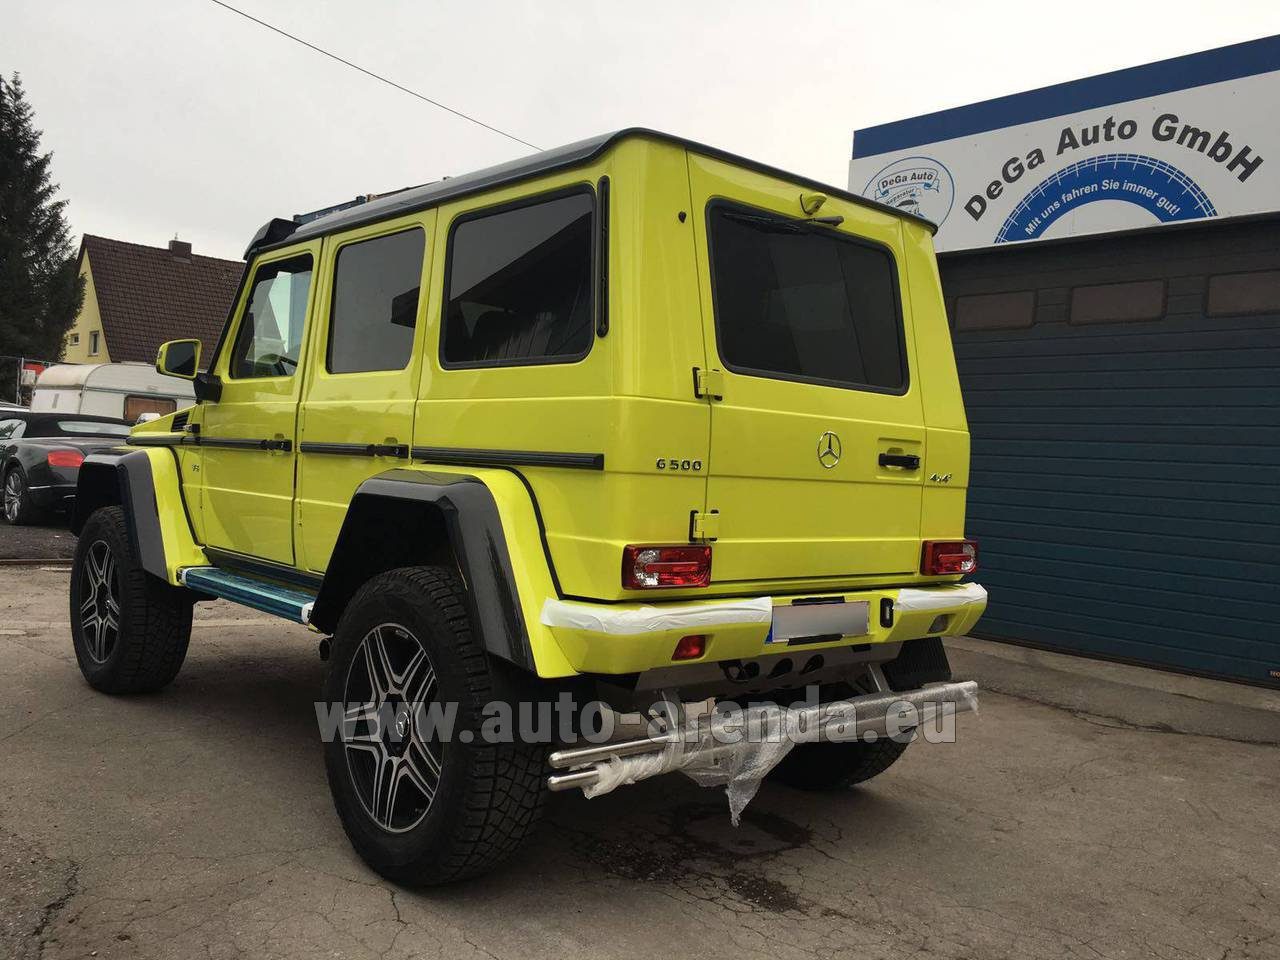 nice airport nce mercedes benz g 500 4x4 yellow rental auto arenda. Black Bedroom Furniture Sets. Home Design Ideas